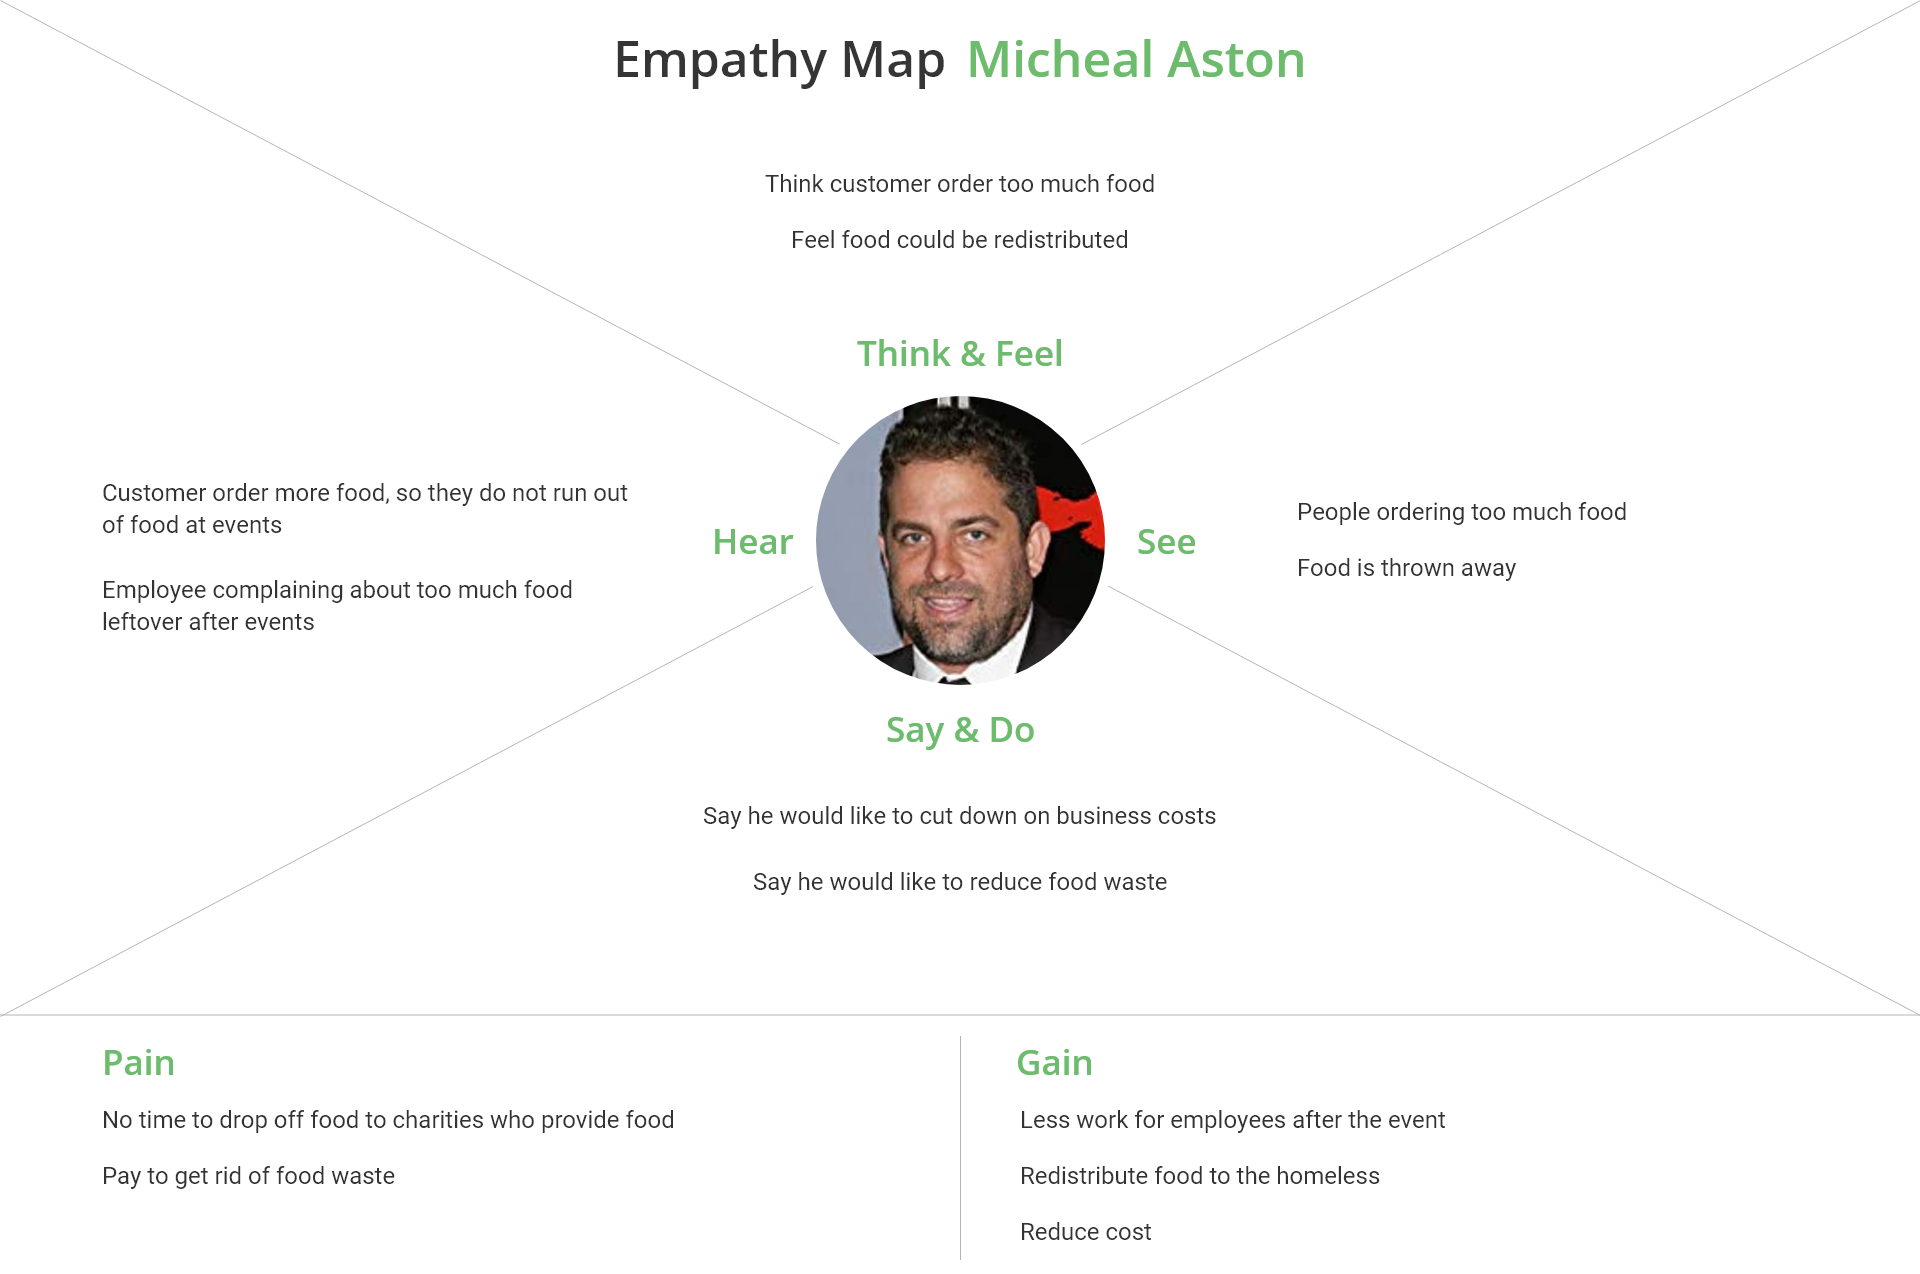 emphathy map Micheal Aston